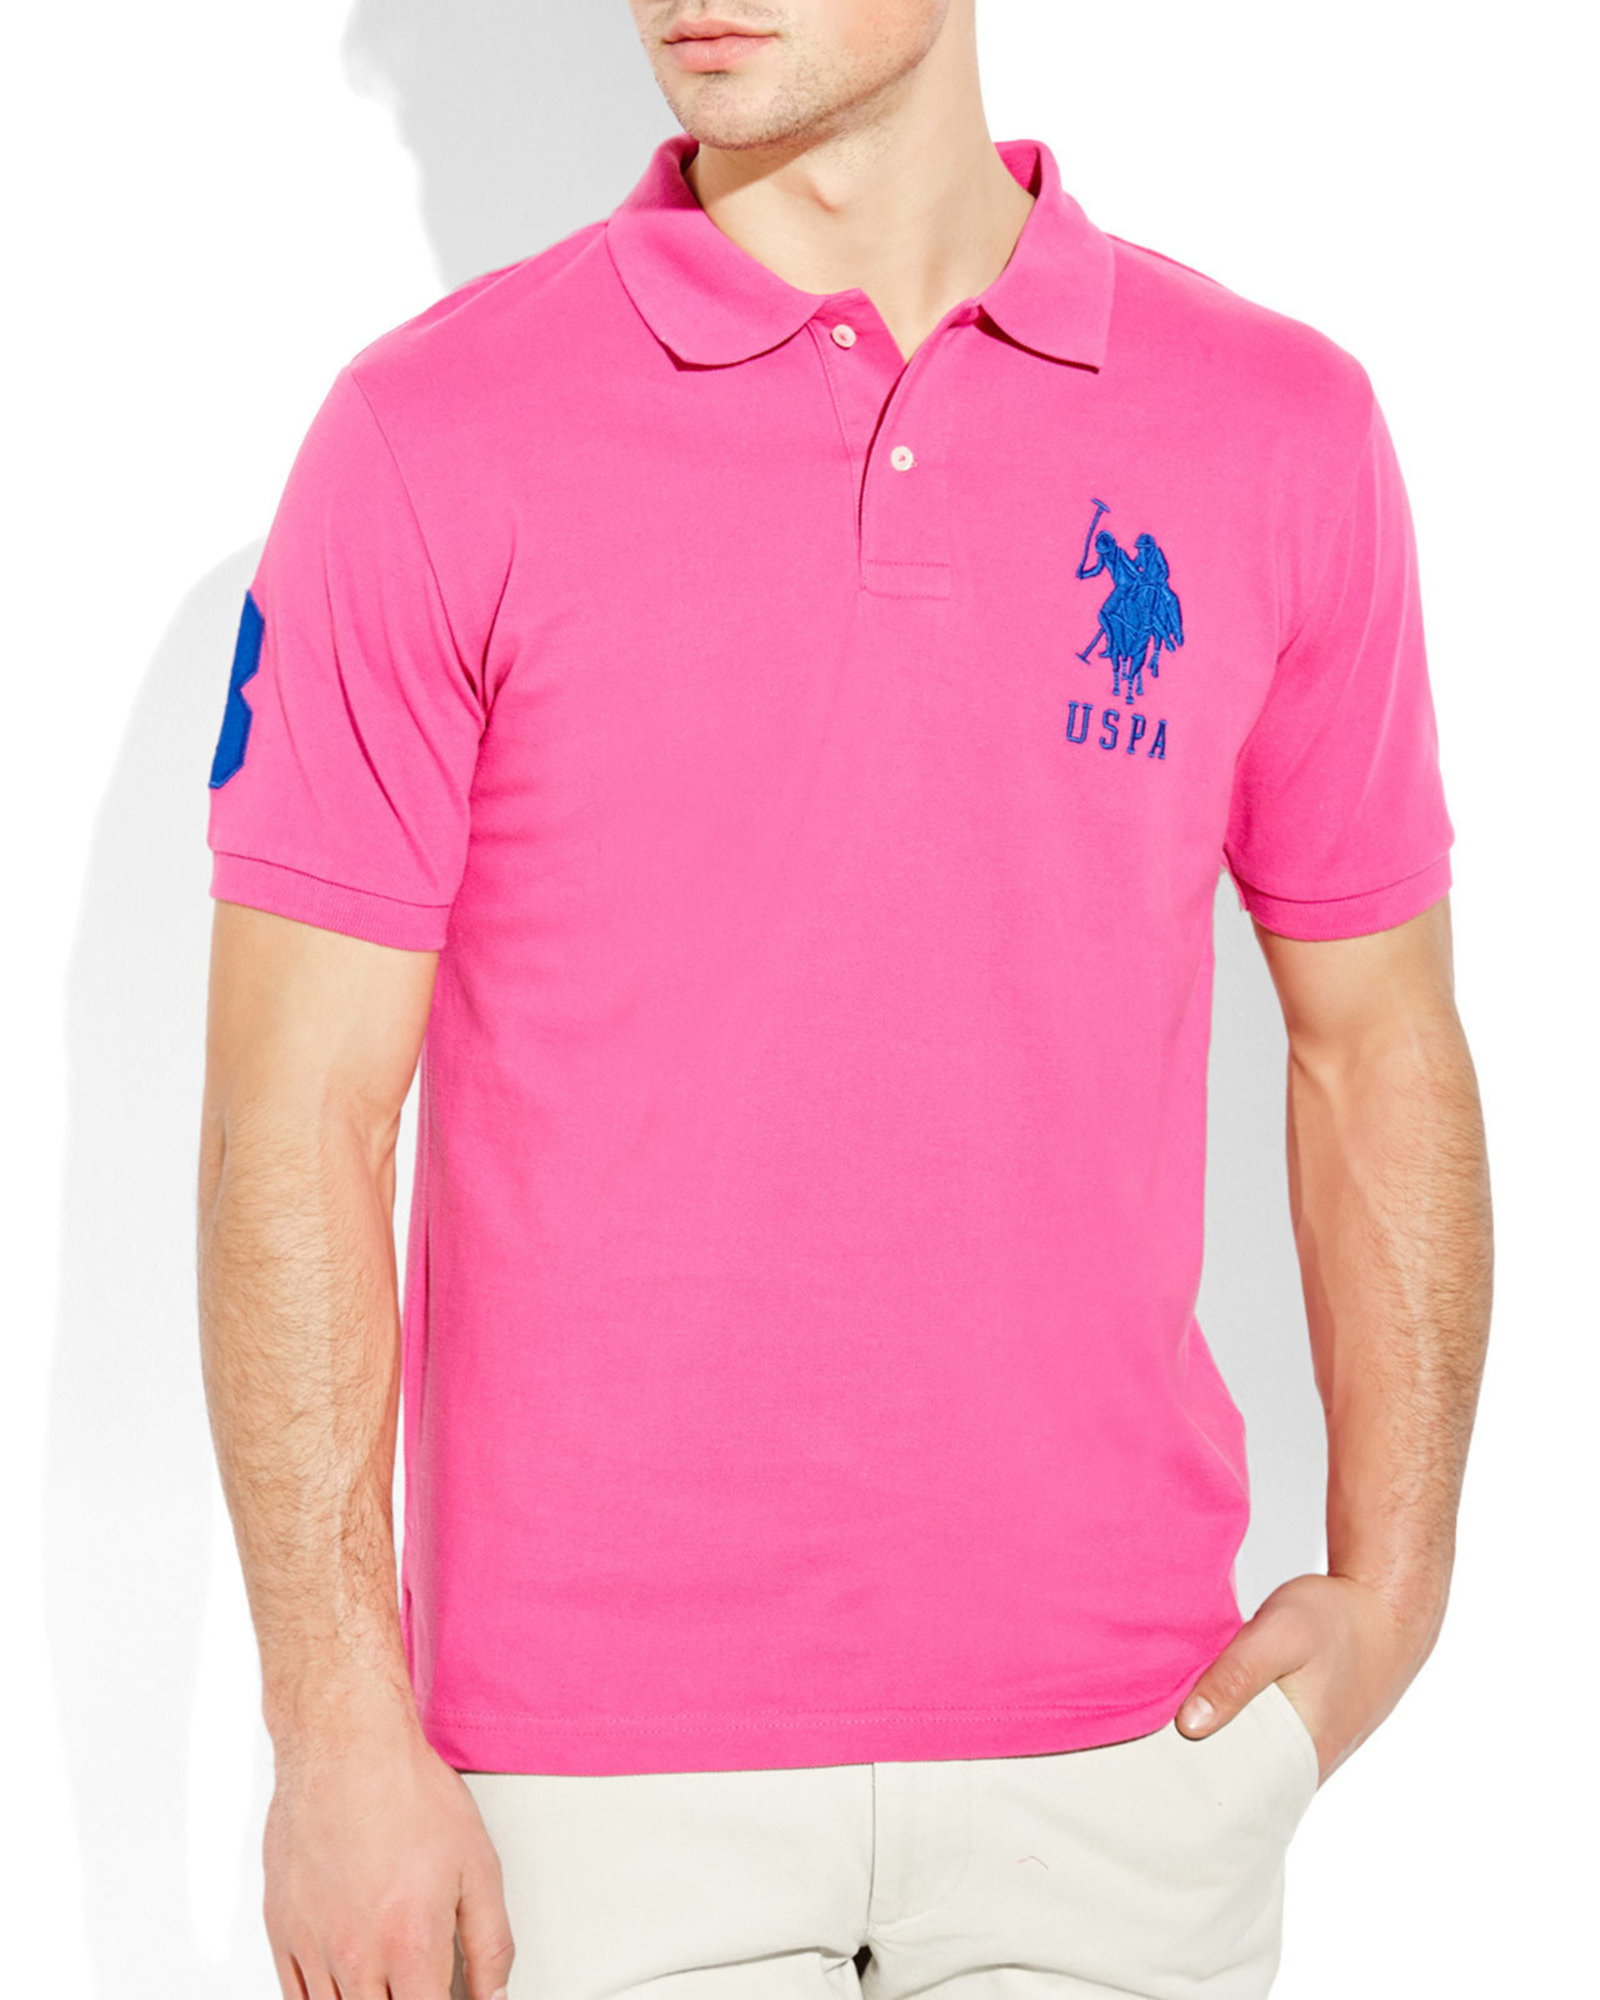 Lyst u s polo assn big logo polo shirt in pink for men for Polo shirts with logos